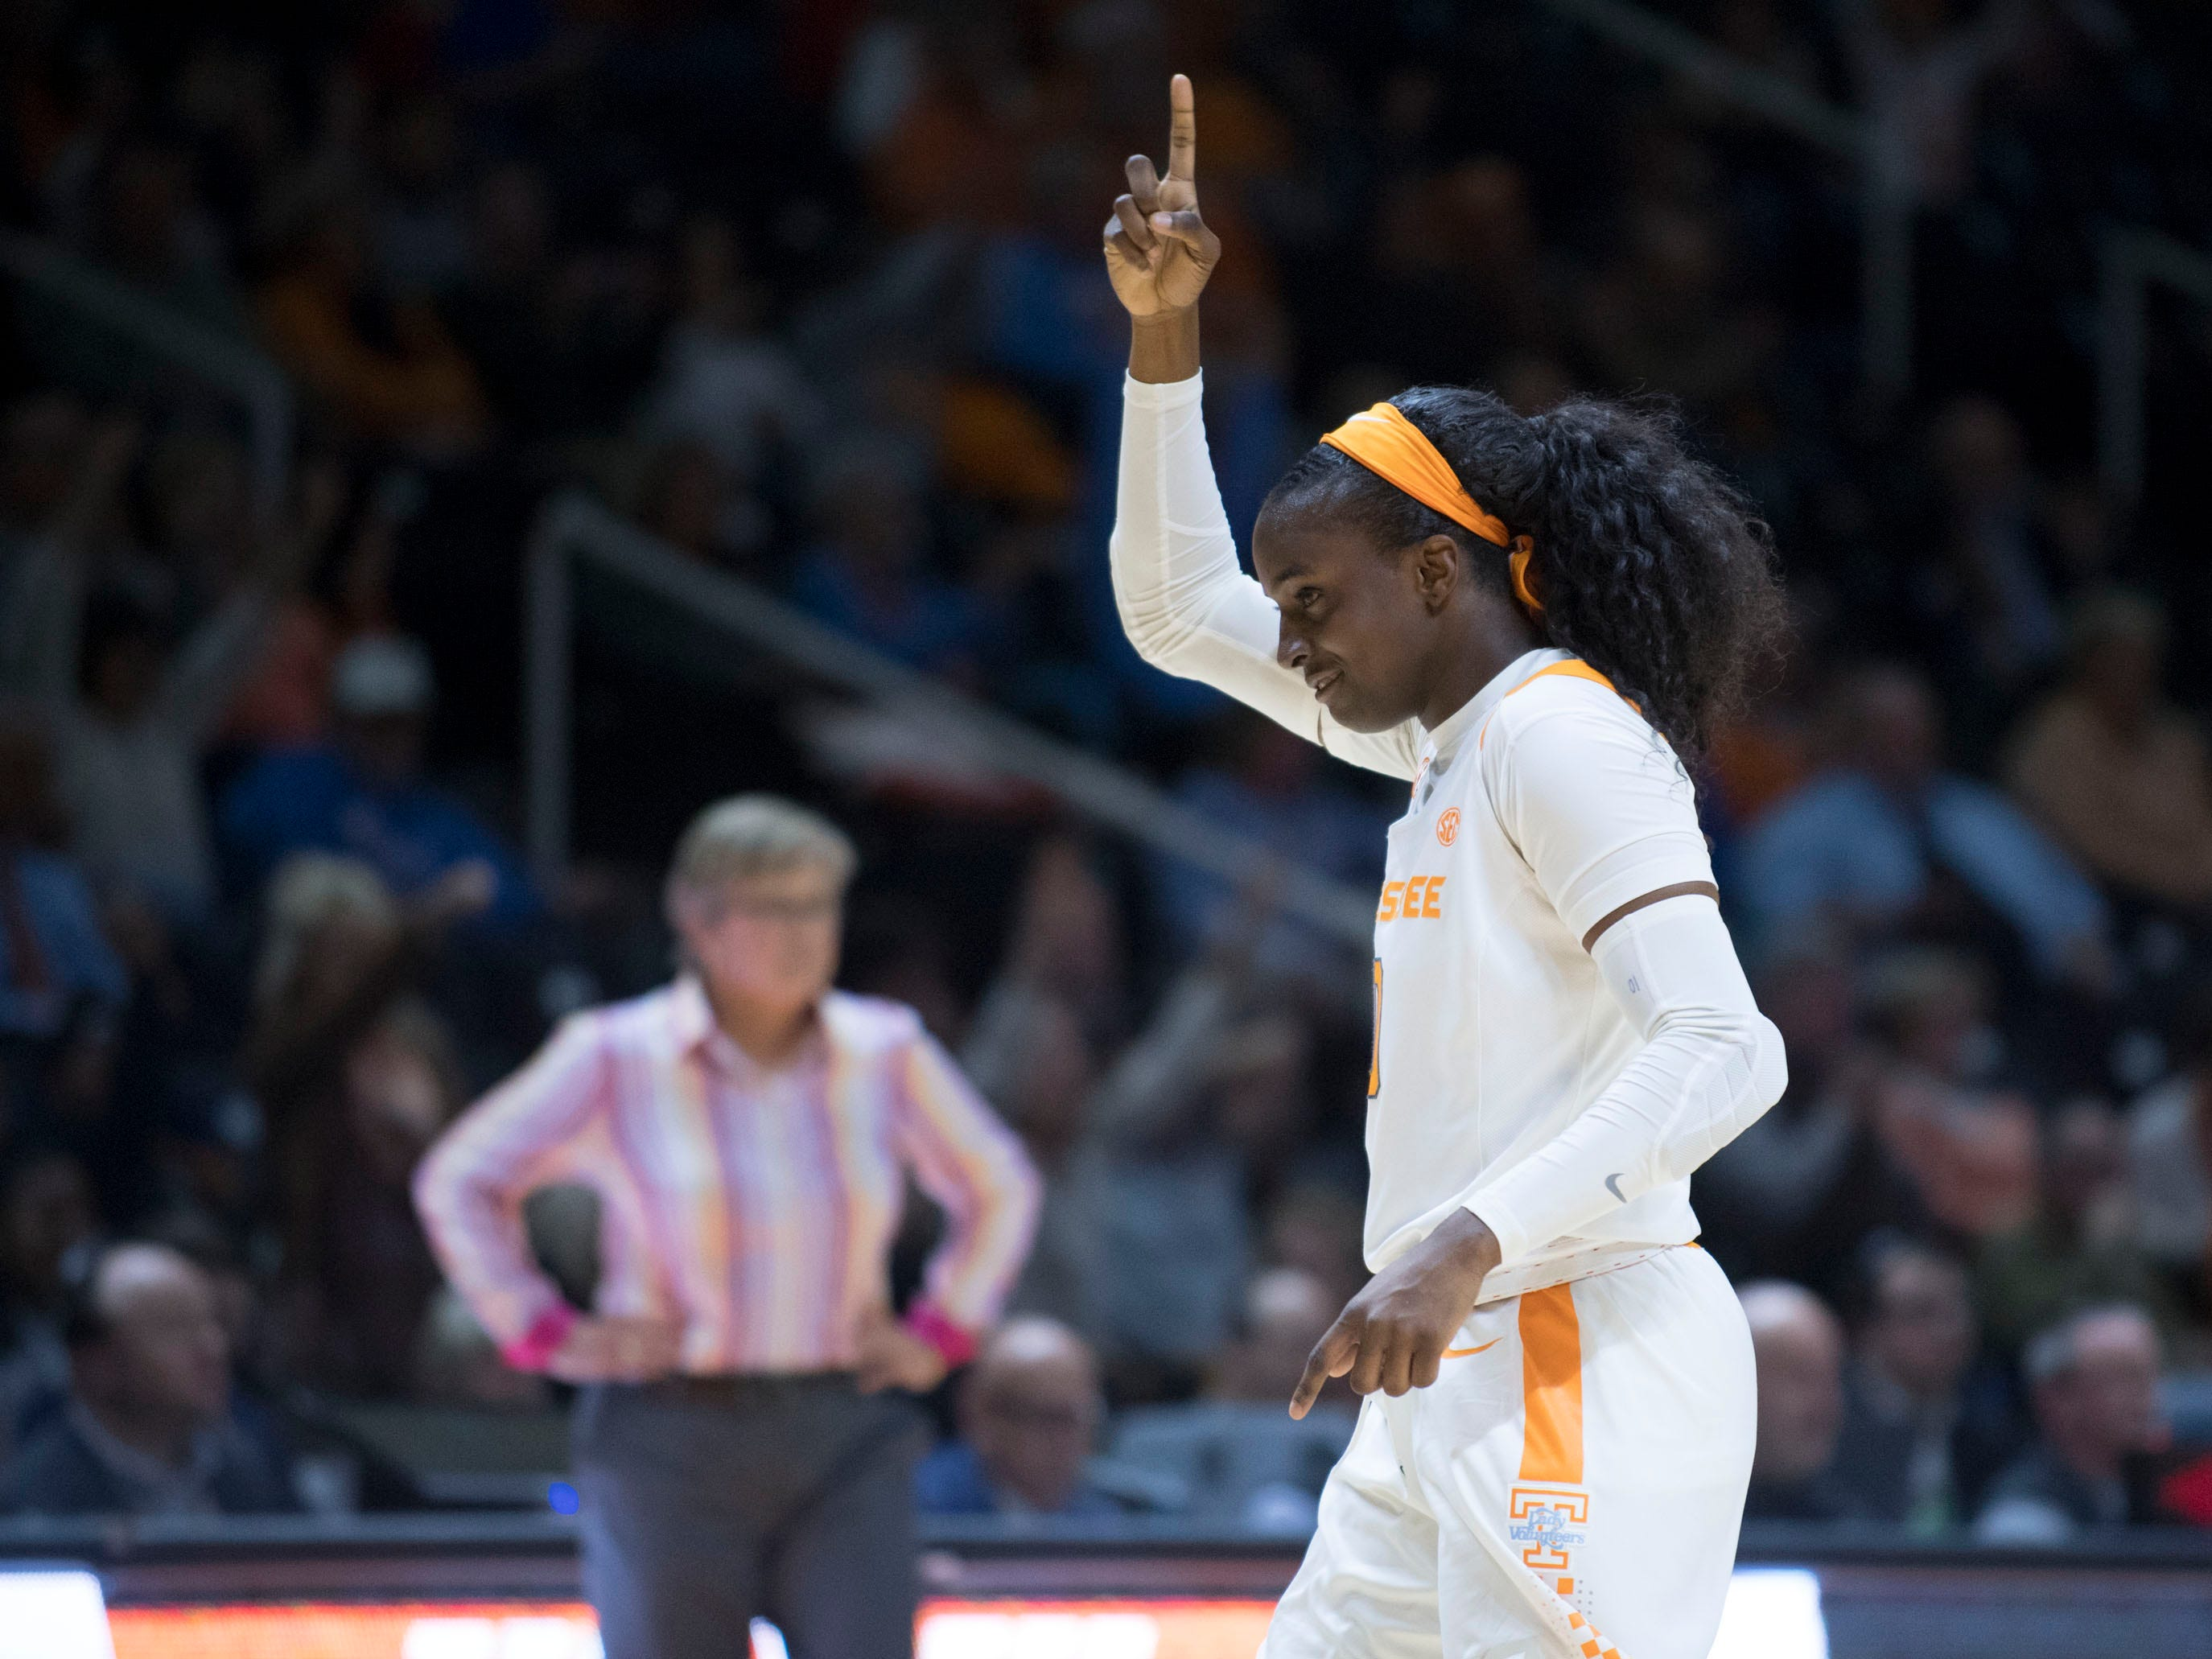 Tennessee's Meme Jackson (10) celebrates after getting a turnover against Stetson on Wednesday, December 5, 2018.